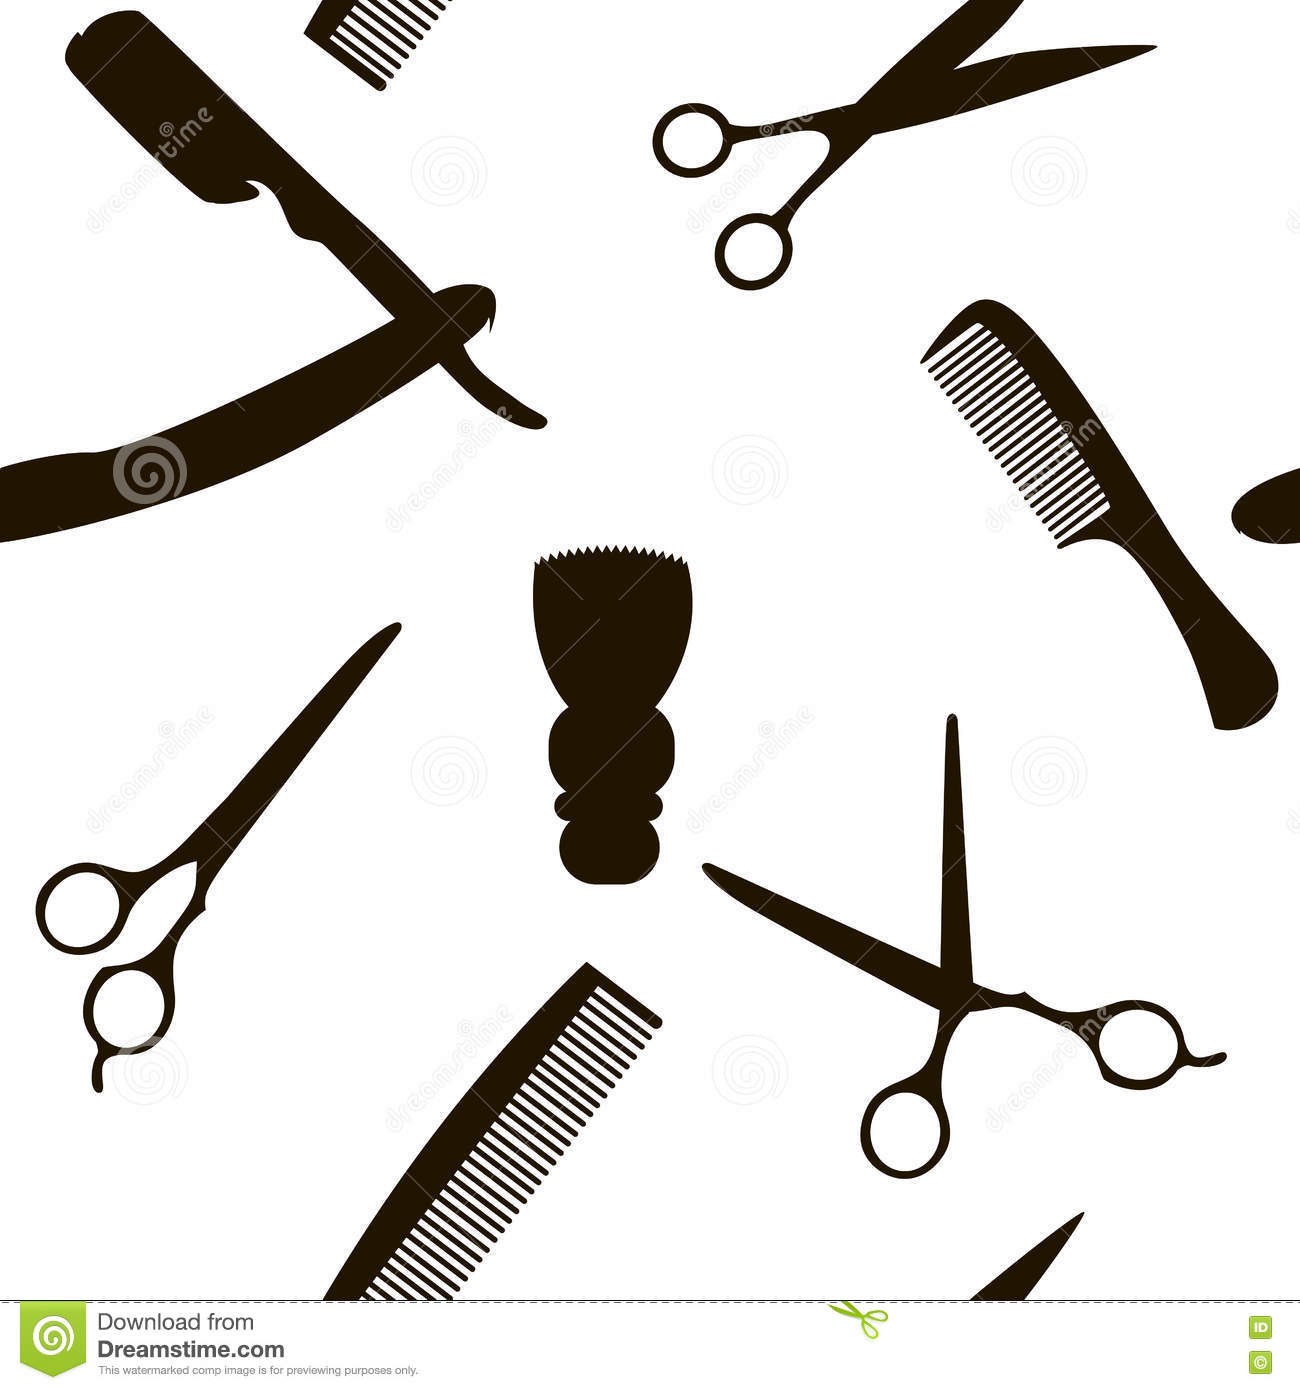 Video Rendering Problem With Windows Movie Maker Video Saves With A Black Screen moreover 31121585 furthermore Stock Illustration Hair Salon Red Symbol Isolated Icon Image50458723 besides Stock Photography Hair Cutting Scissor Image24644122 in addition 10 Suvs With Second Row Captain S Chairs 128075. on trim audio icon